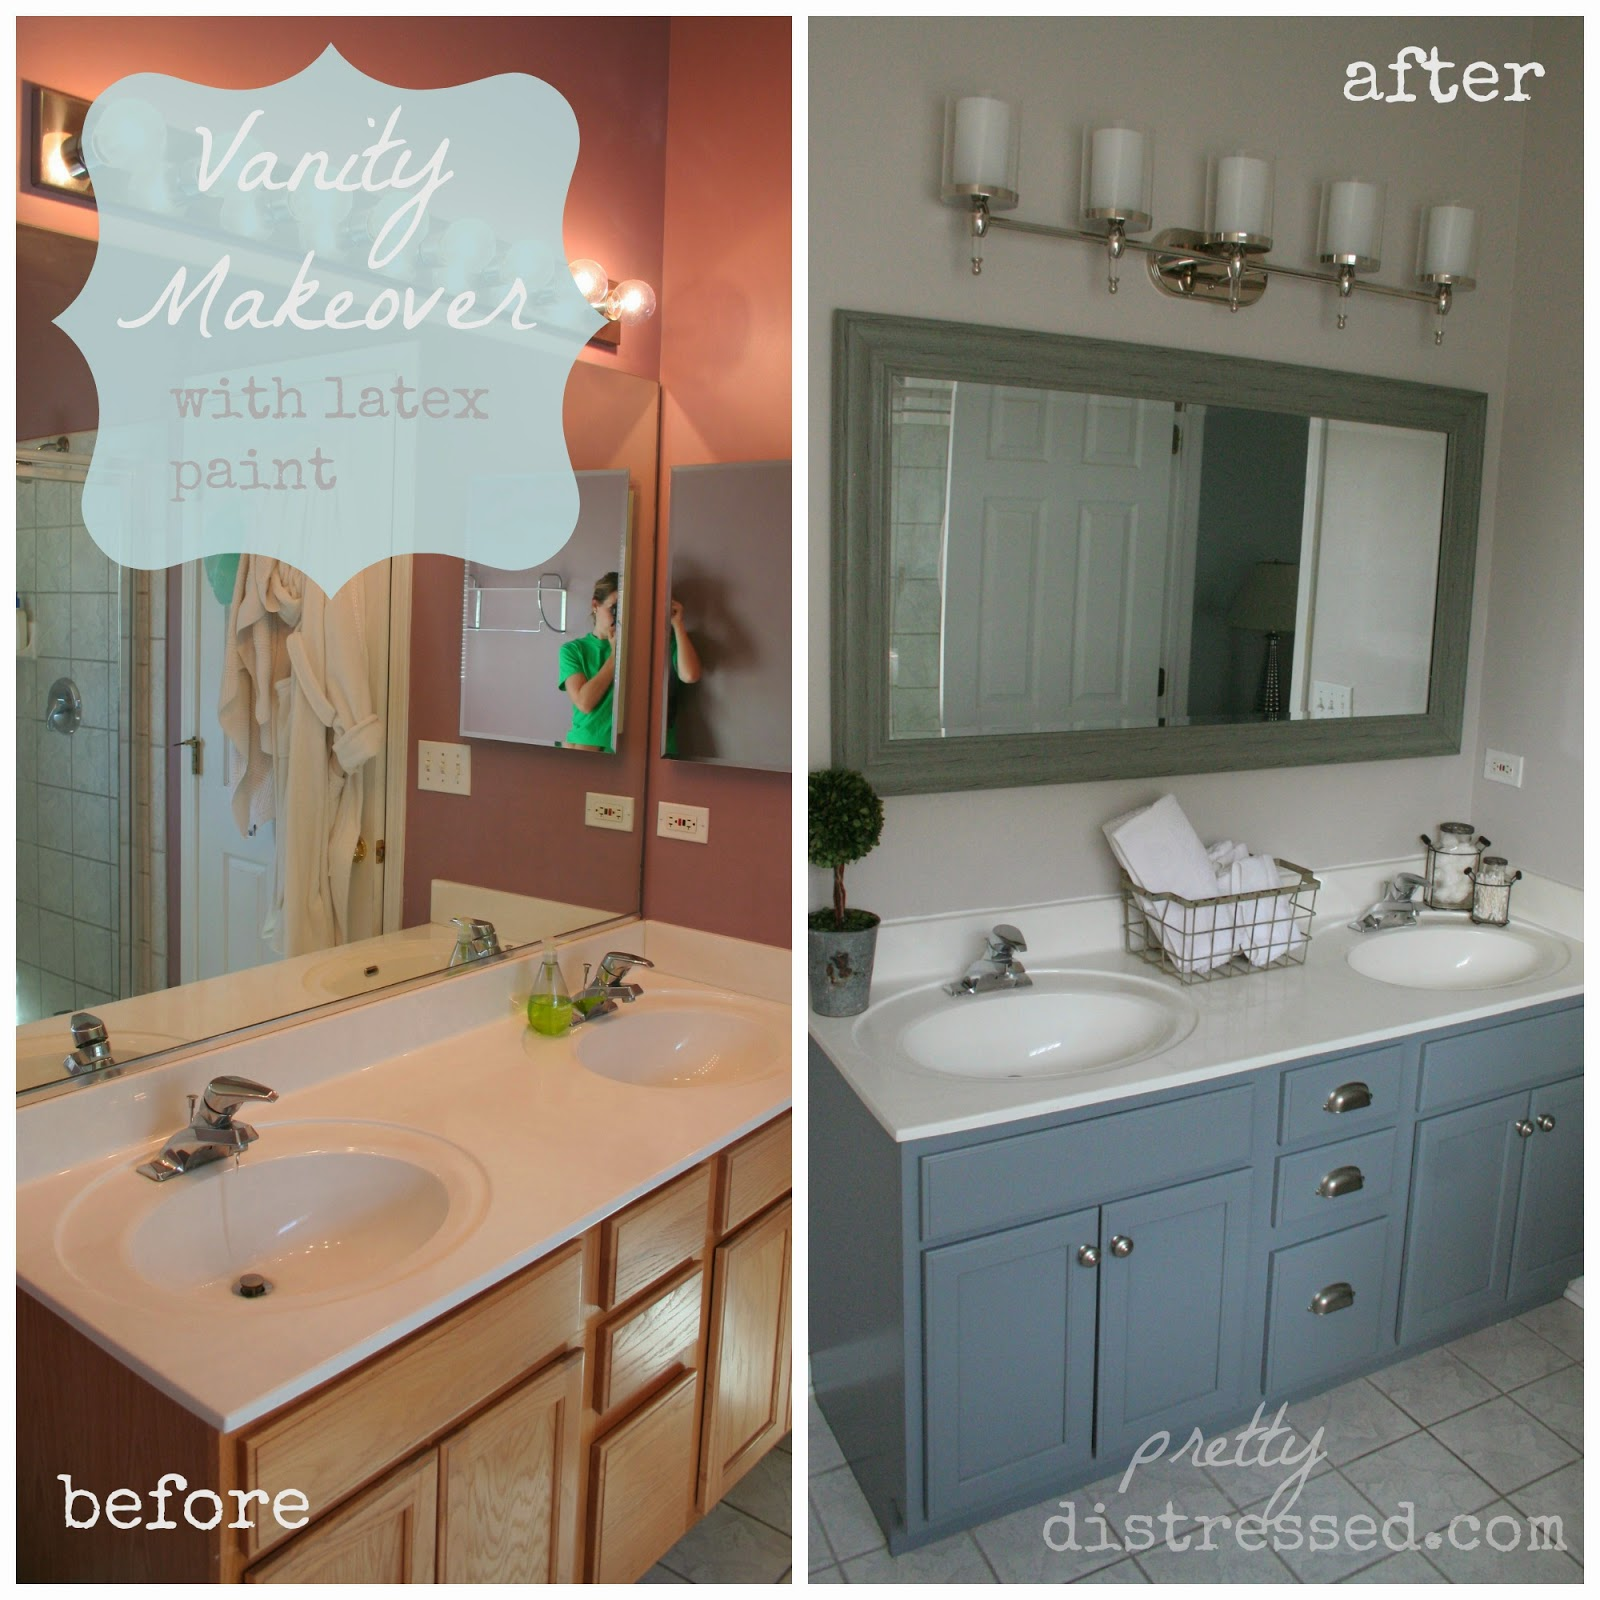 Superb Bathroom Vanity Makeover with Latex Paint